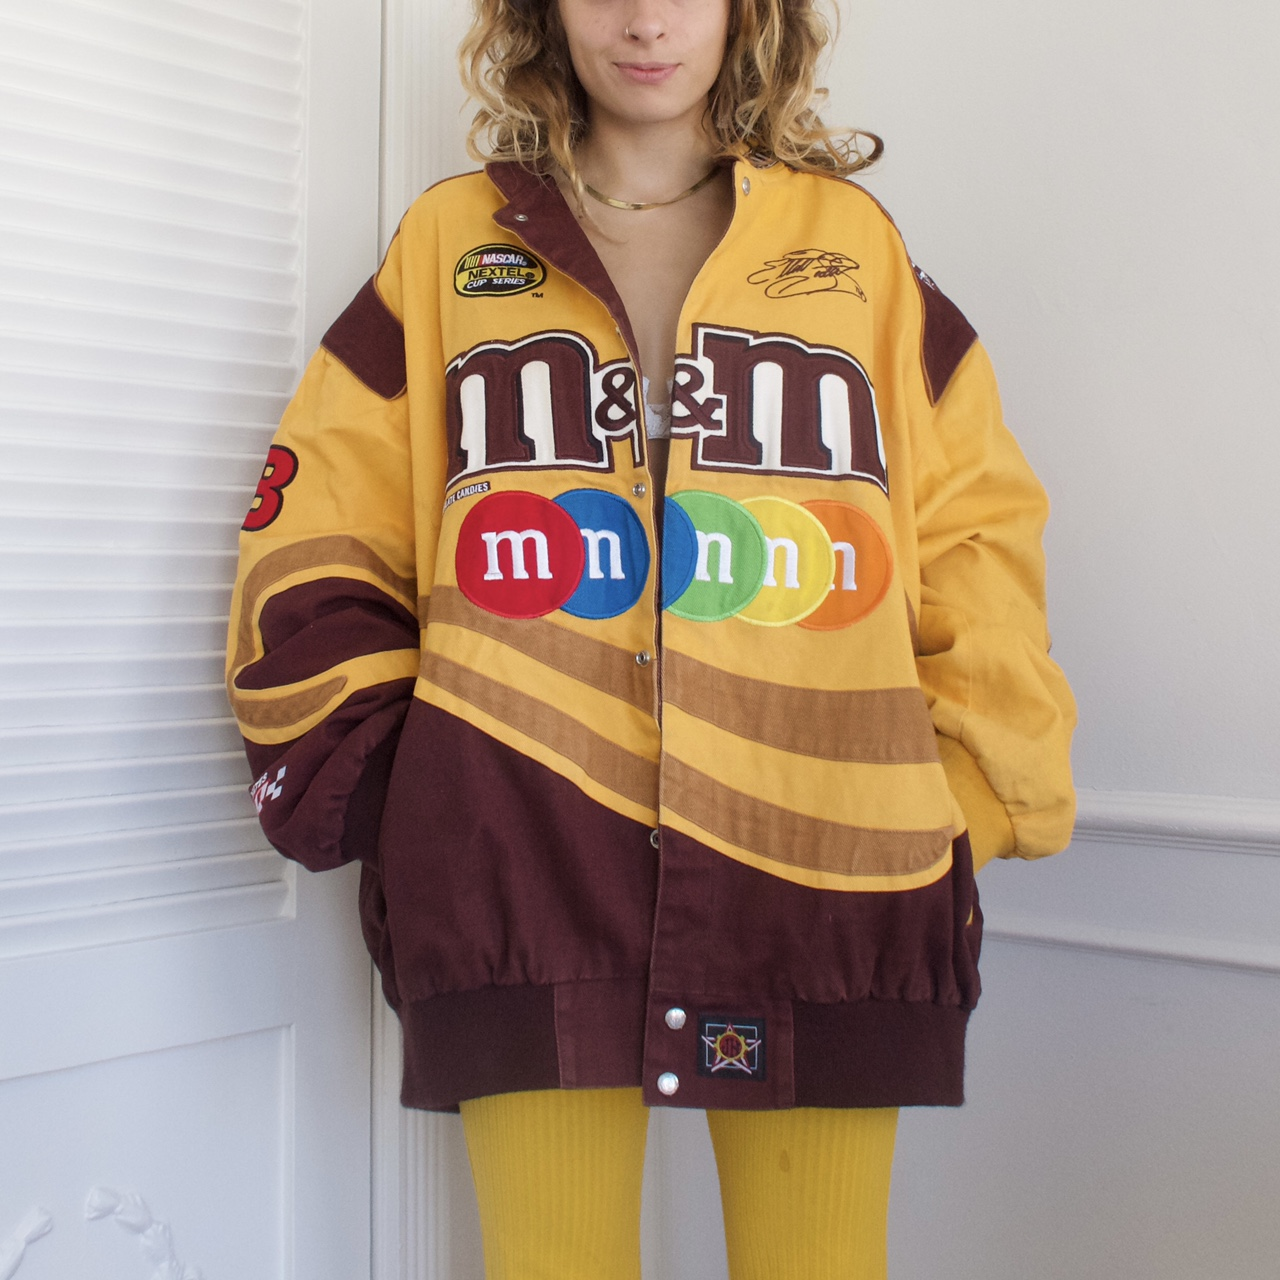 Product Image 1 - Vintage yellow and brown M&Ms